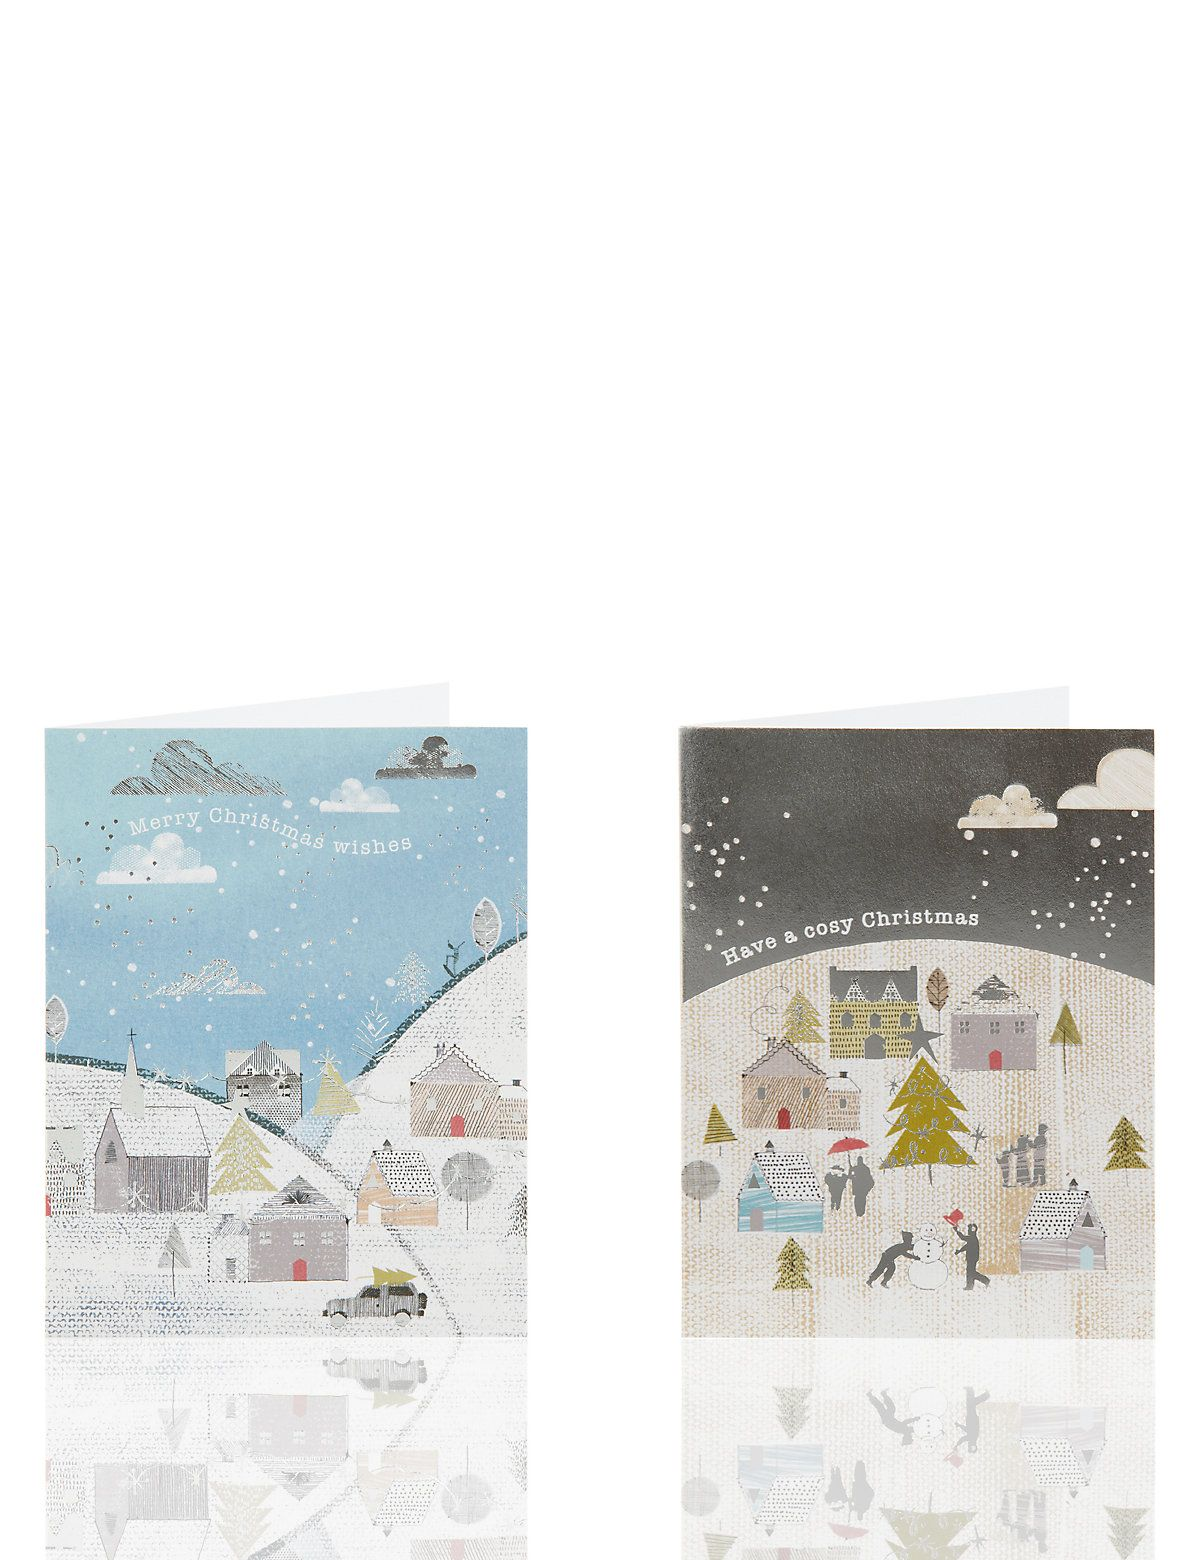 20 Festive Town Scene Charity Christmas Cards Charity